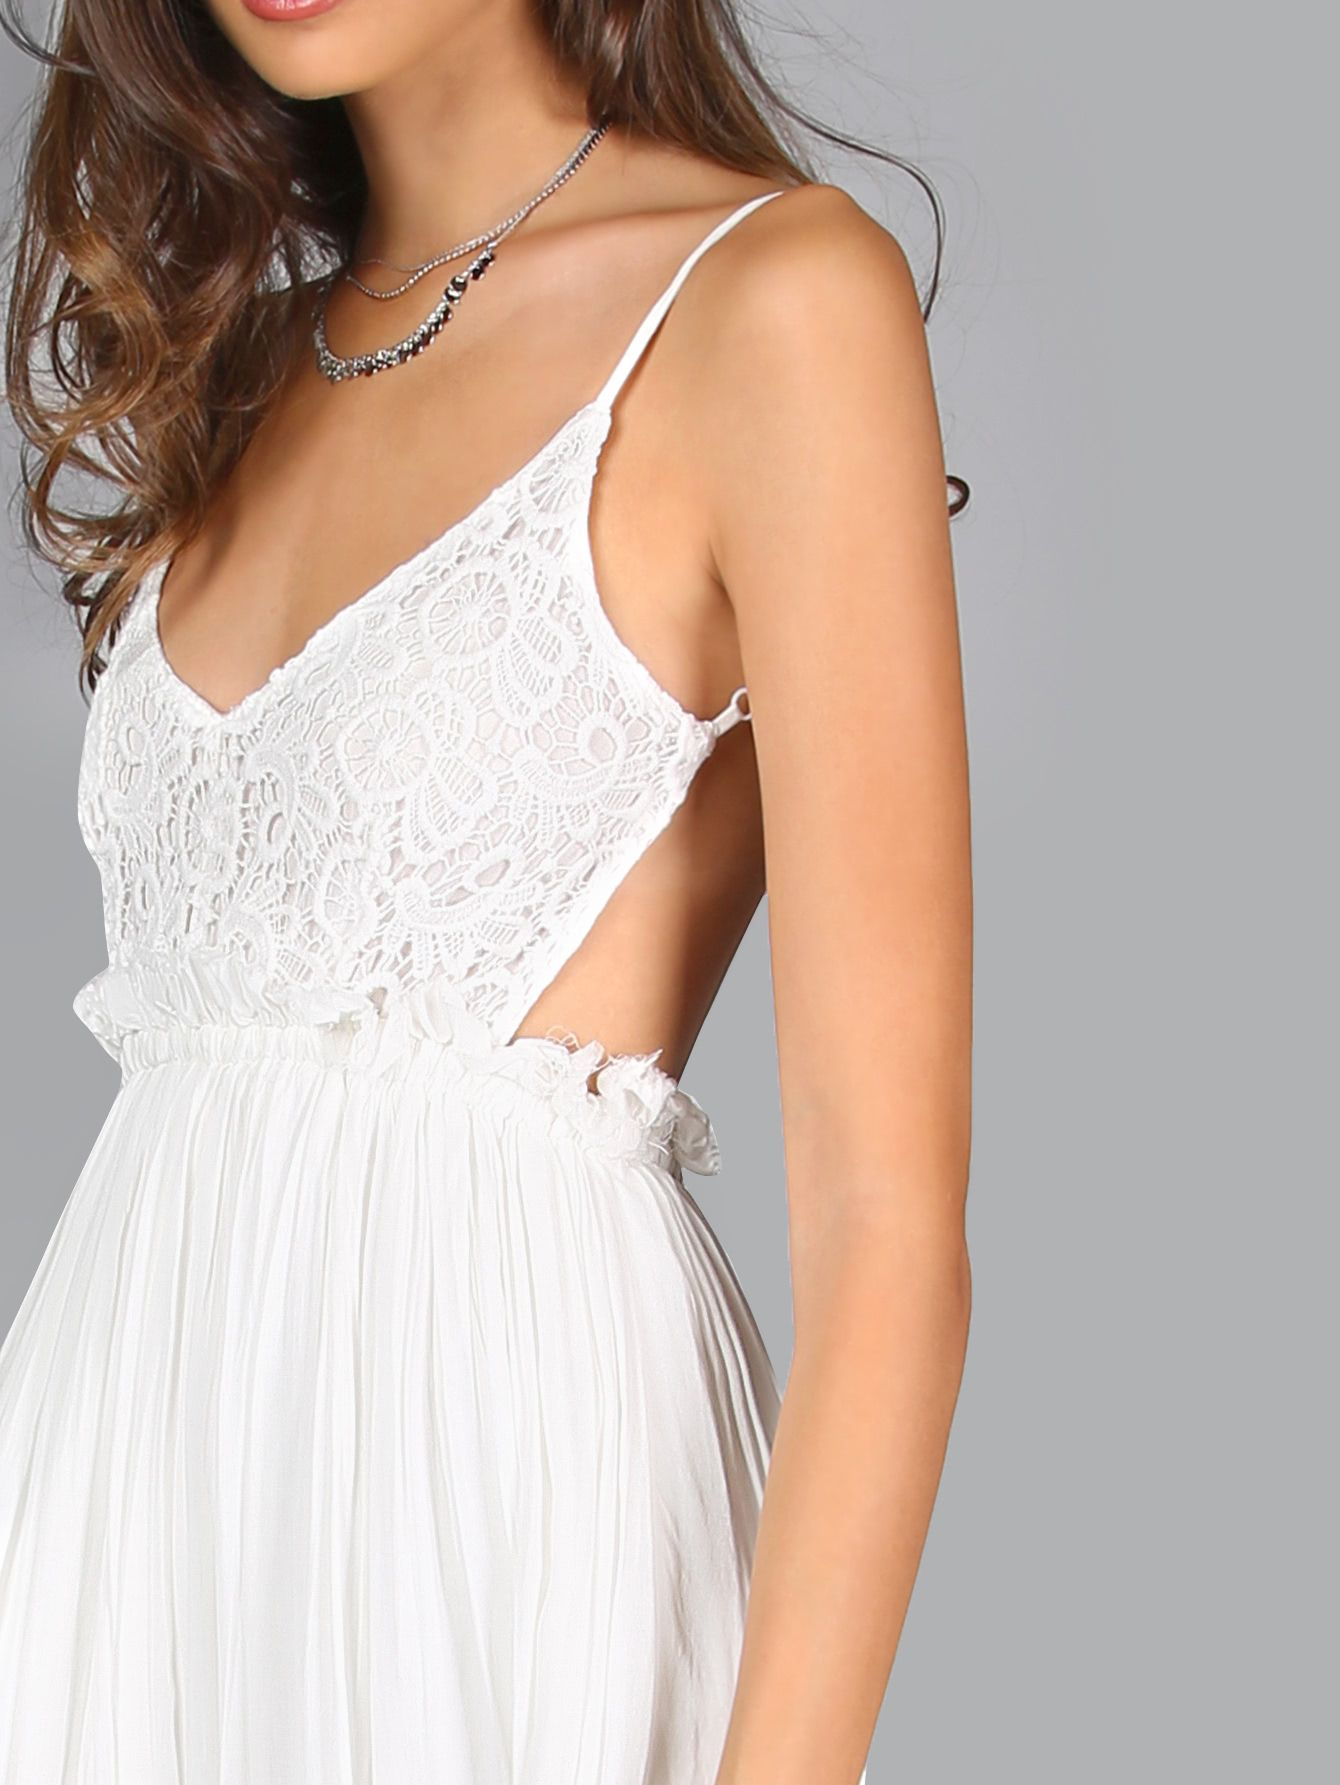 Lace Overlay Backless Pleated Maxi Dress -SheIn(Sheinside)  White